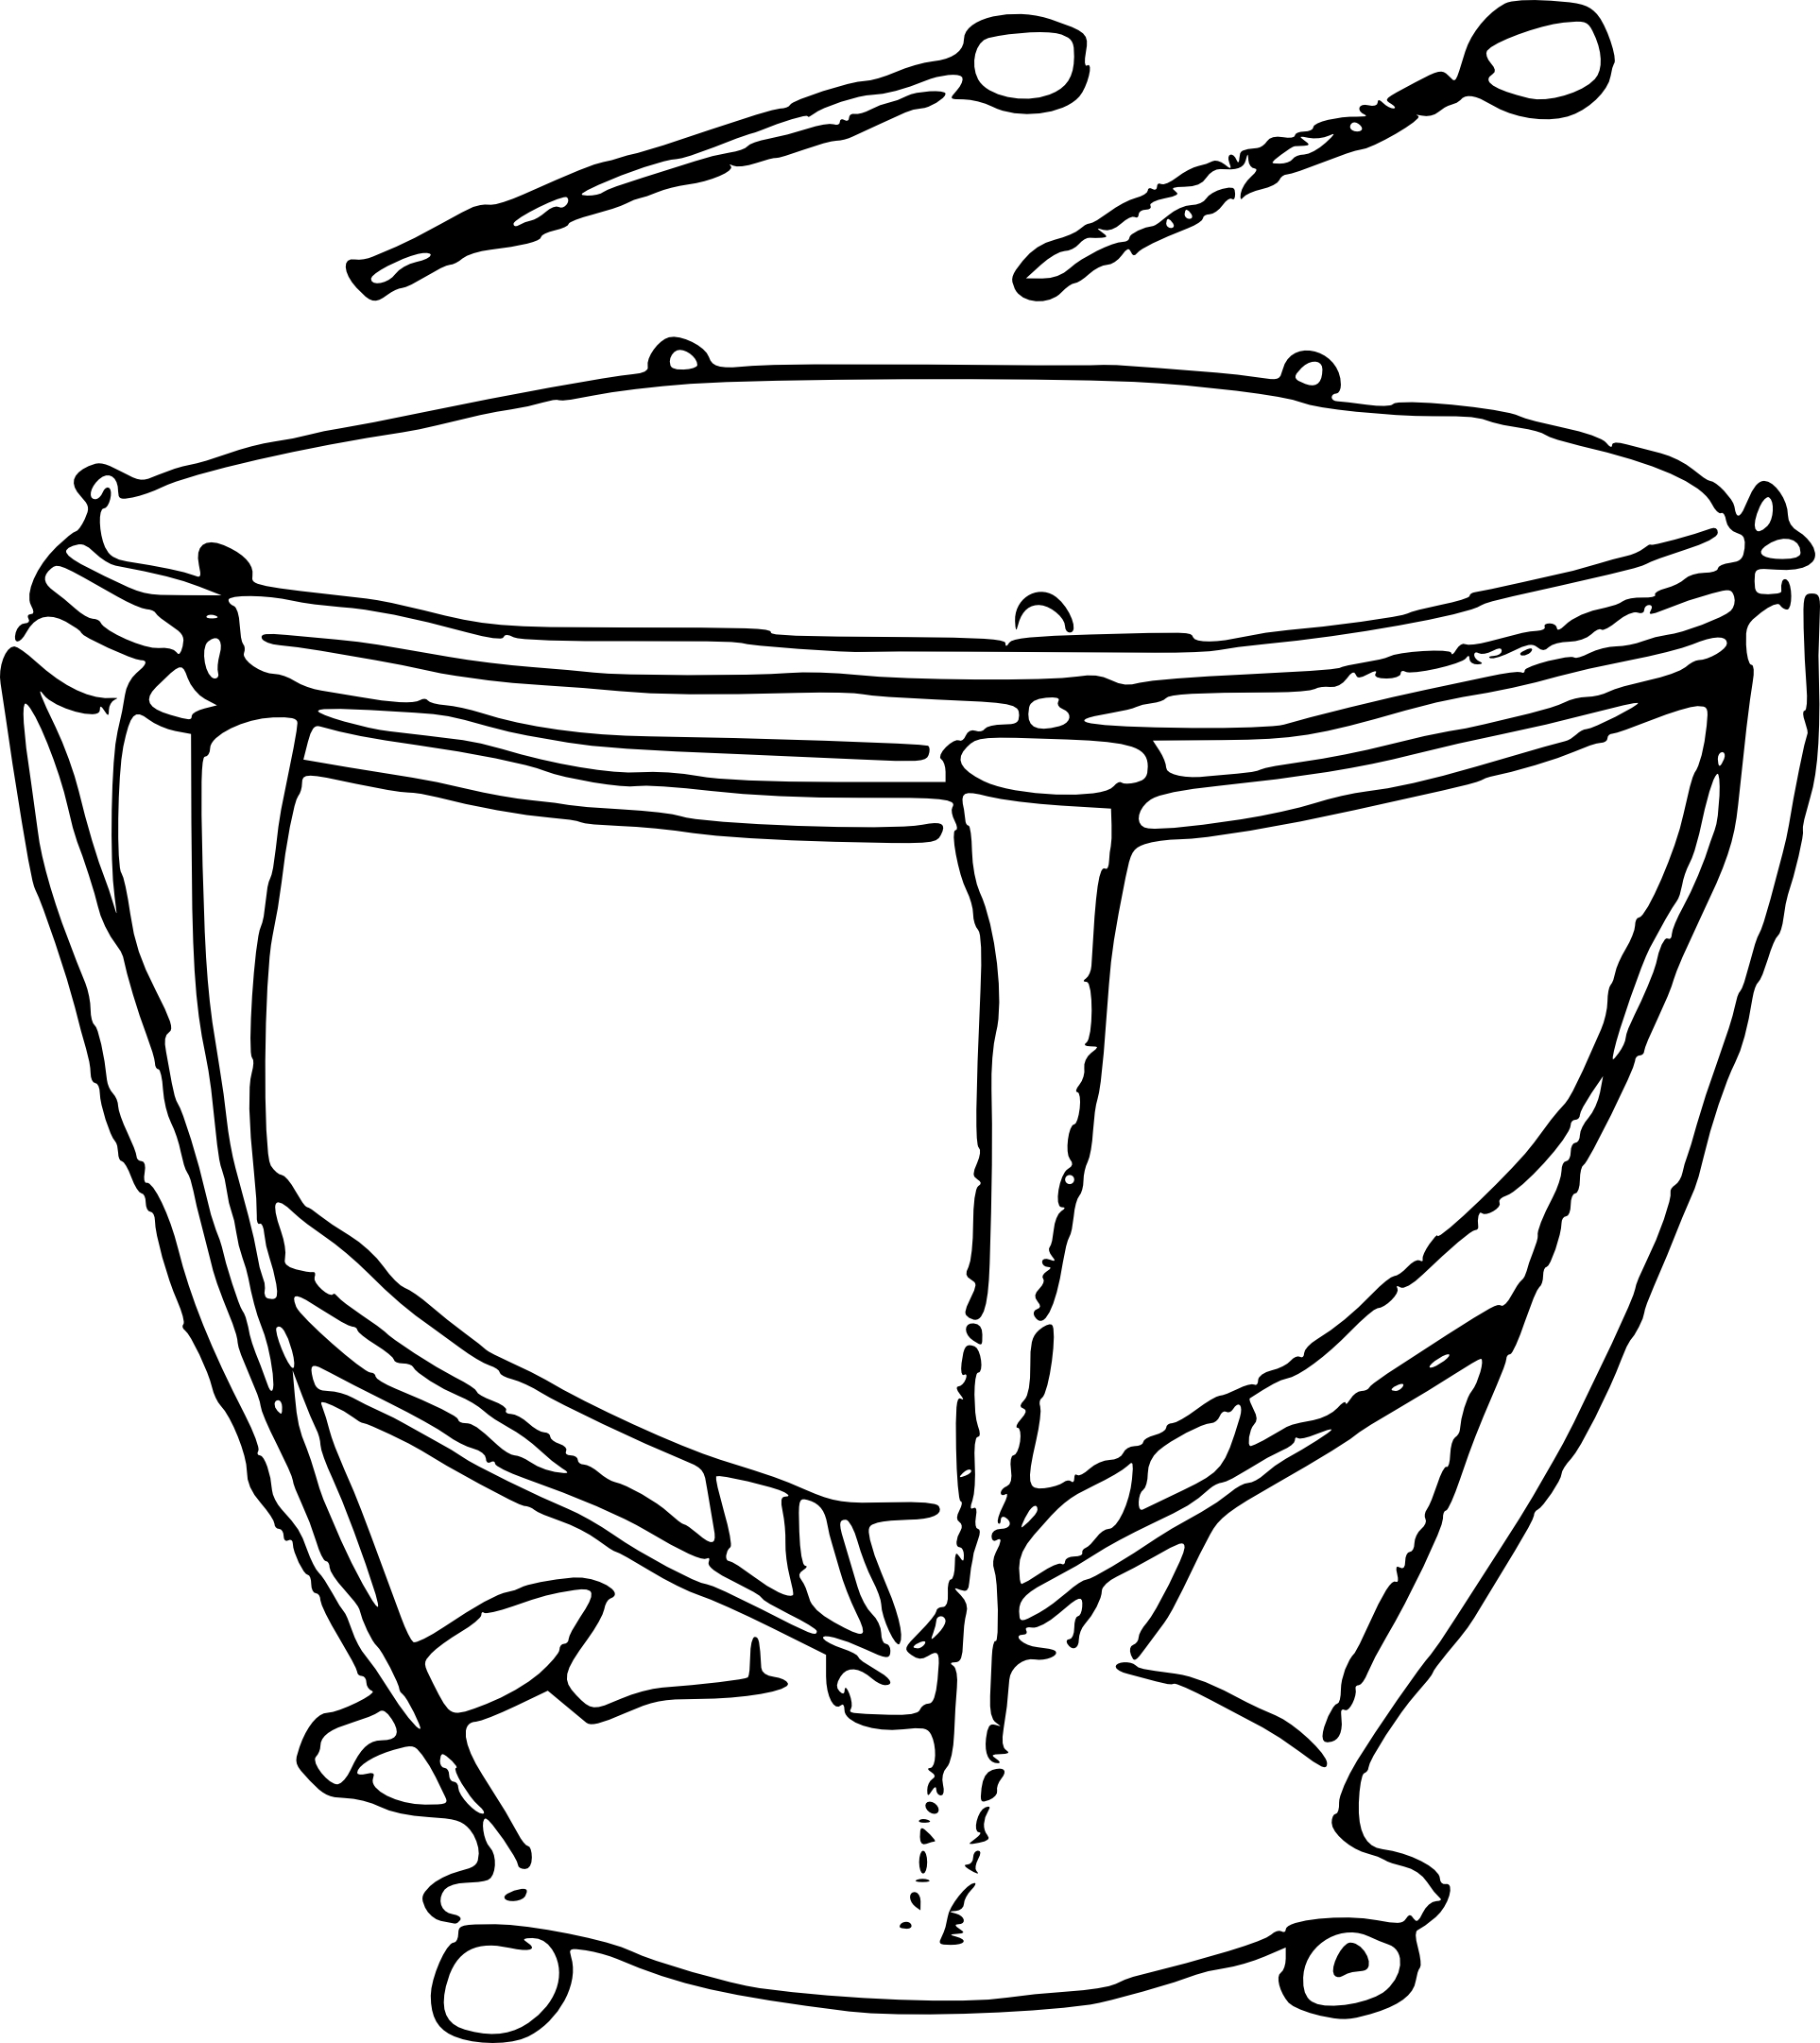 Coloriage timbale